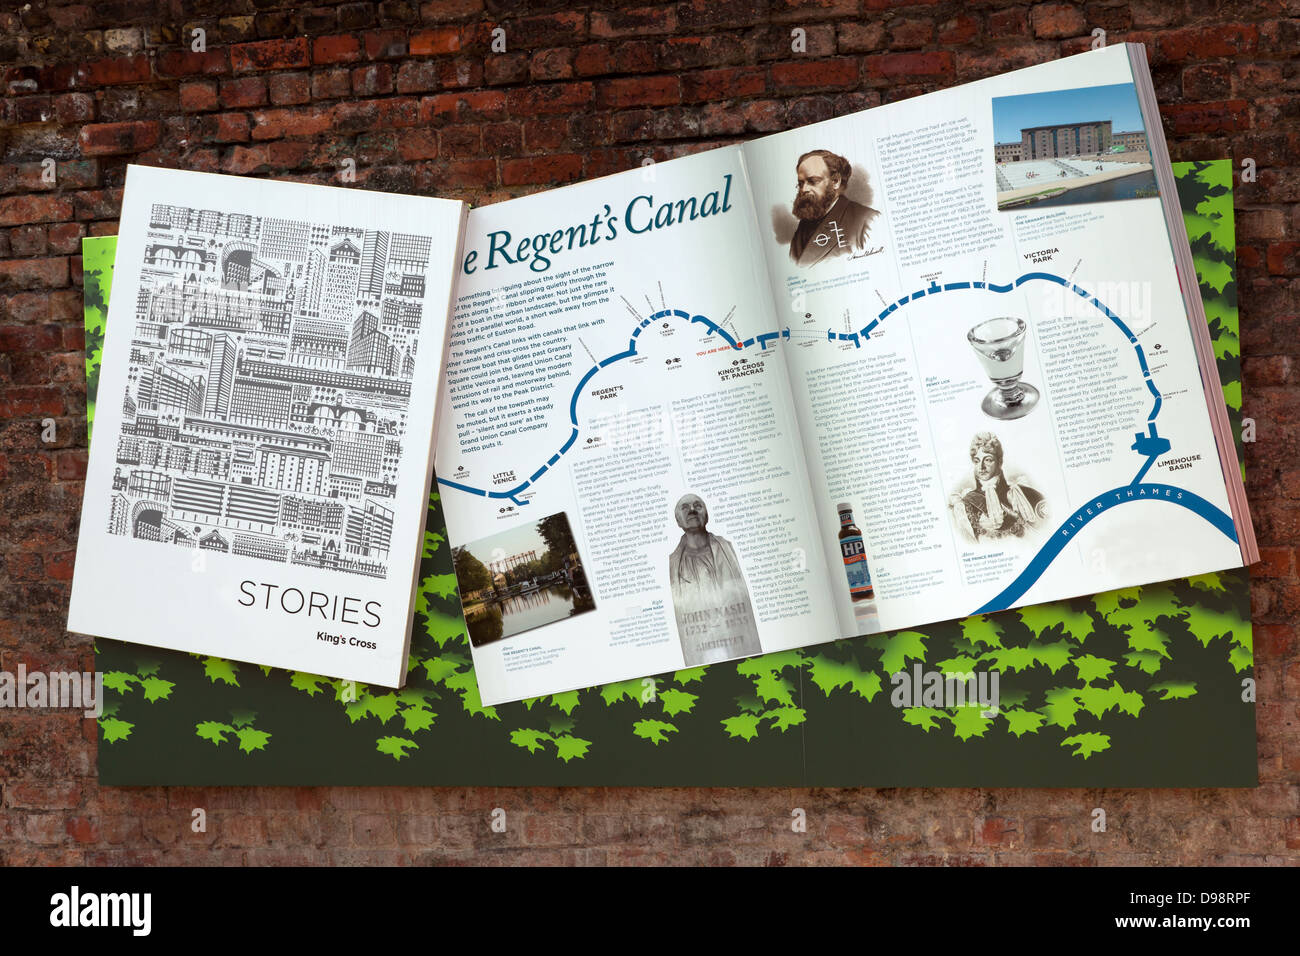 Artistic tourist map of the Regent's Canal showing points of interest along the way - Stock Image